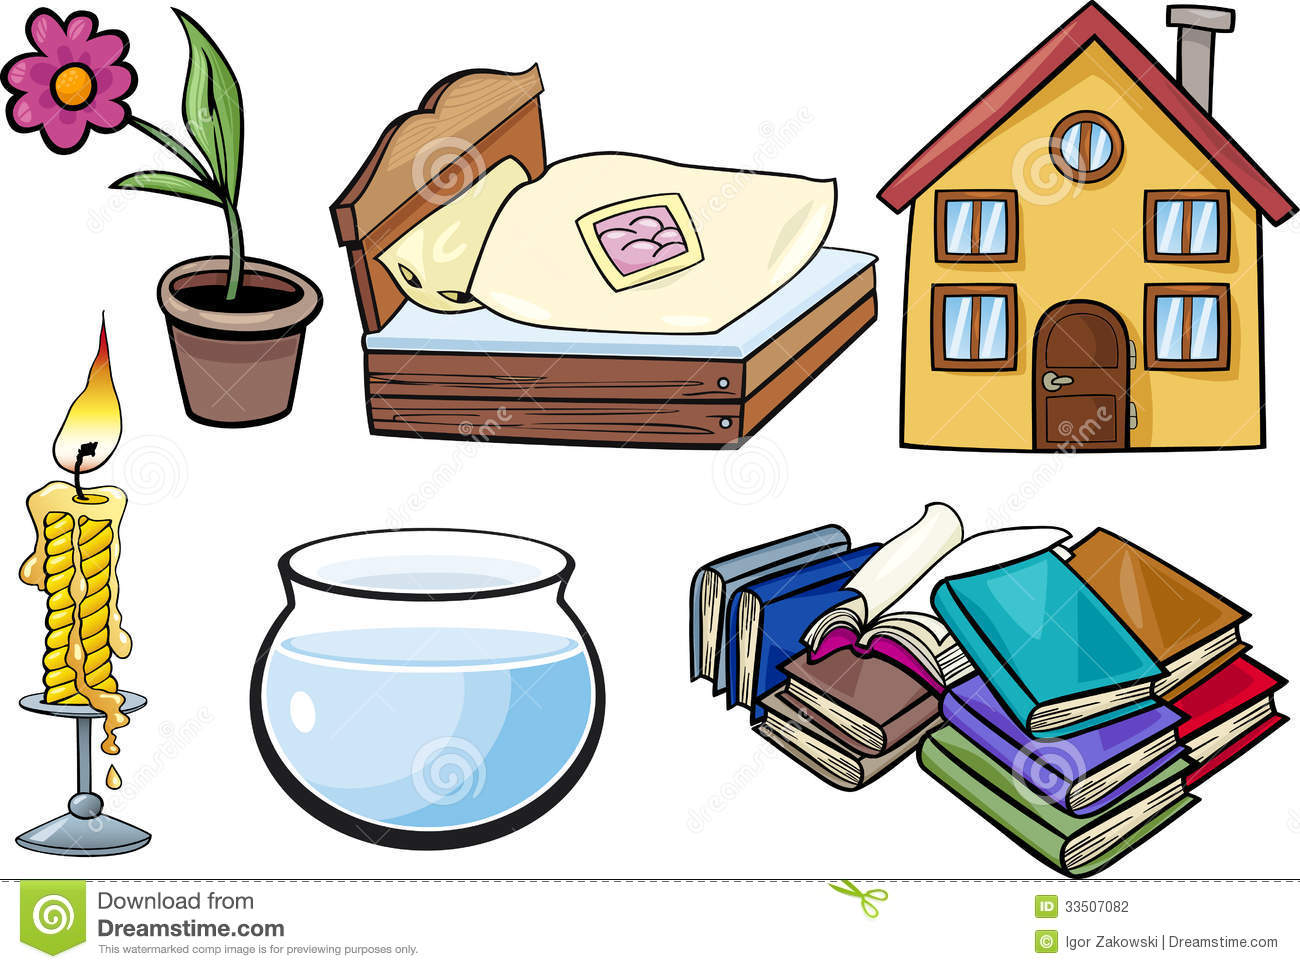 Object clipart #20, Download drawings